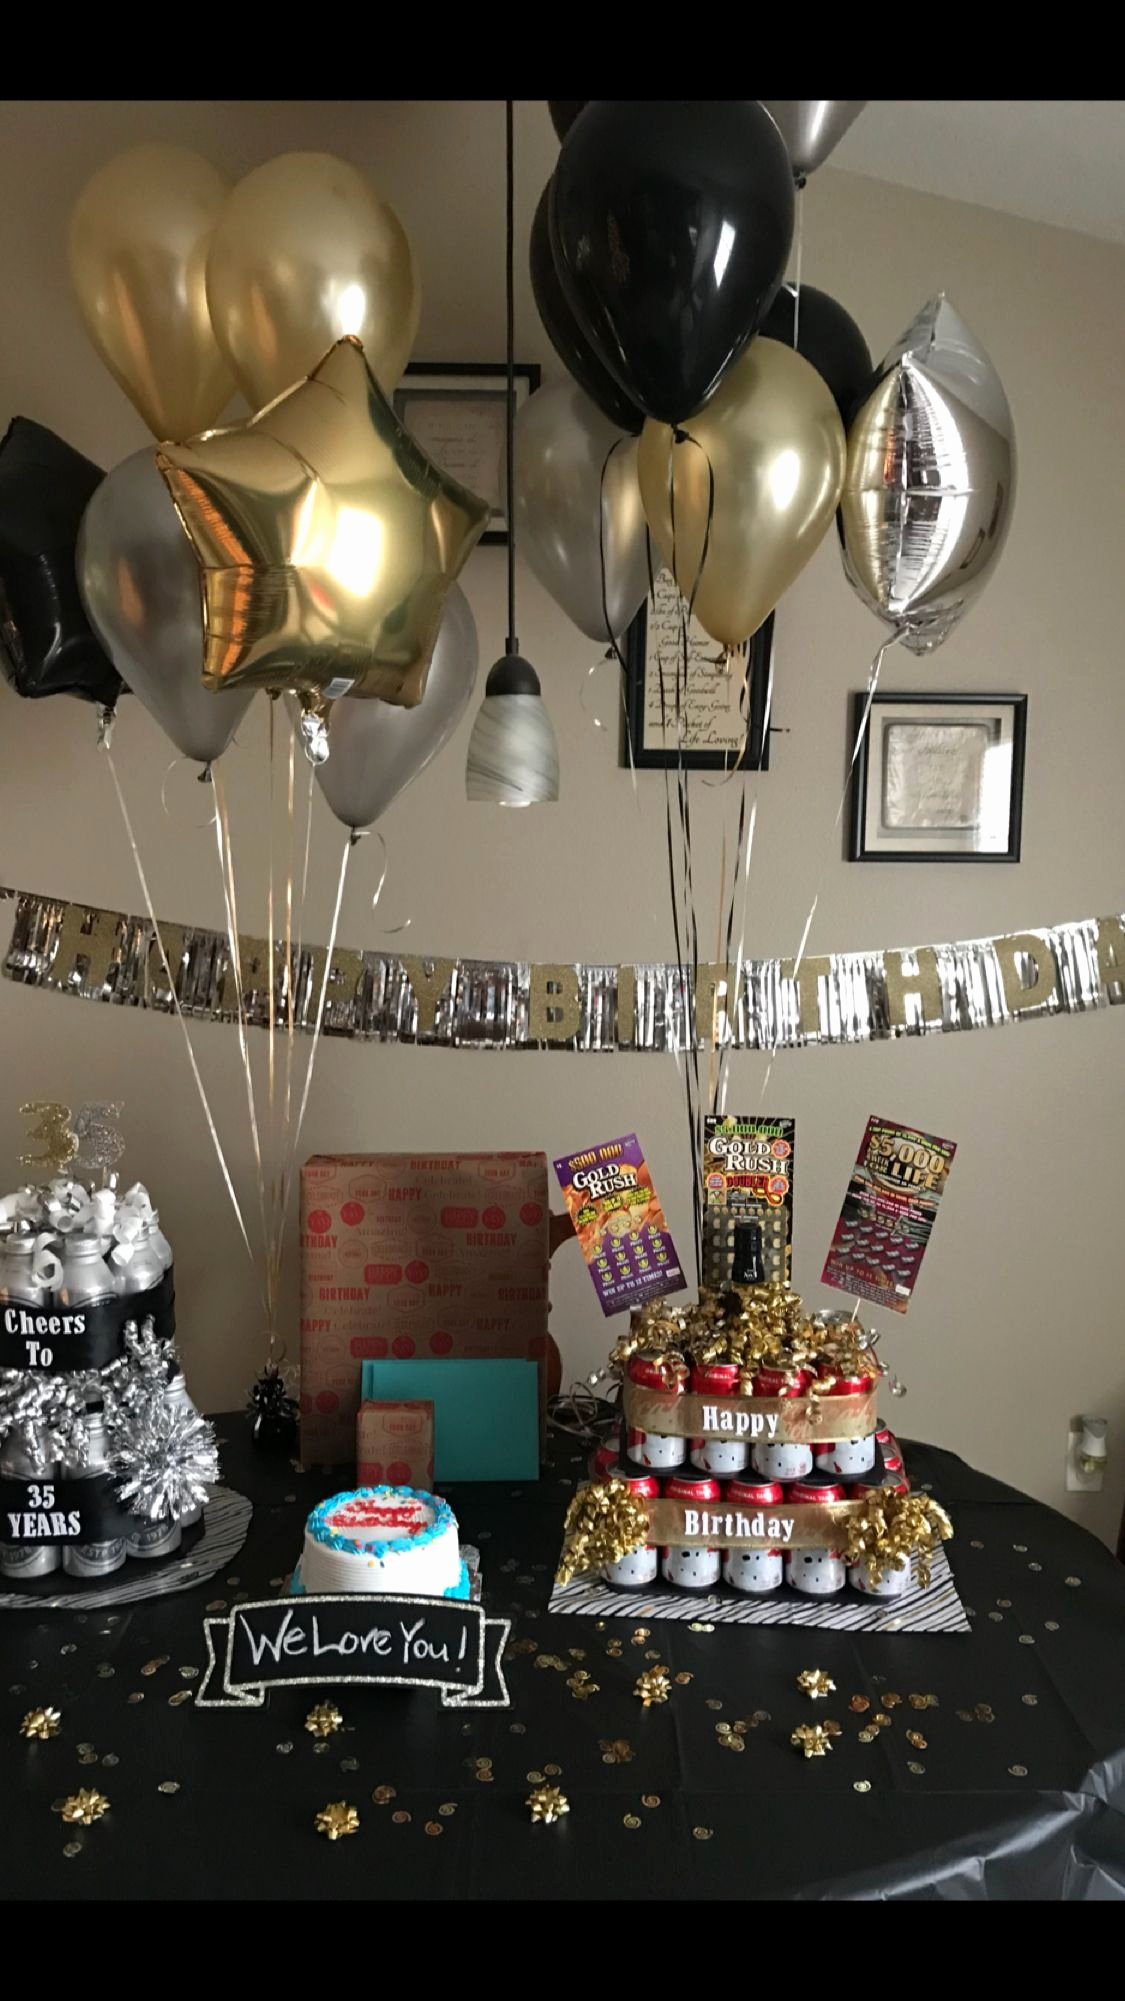 Surprise Birthday Decoration Ideas for Husband Inspirational Husband Birthday Surprise